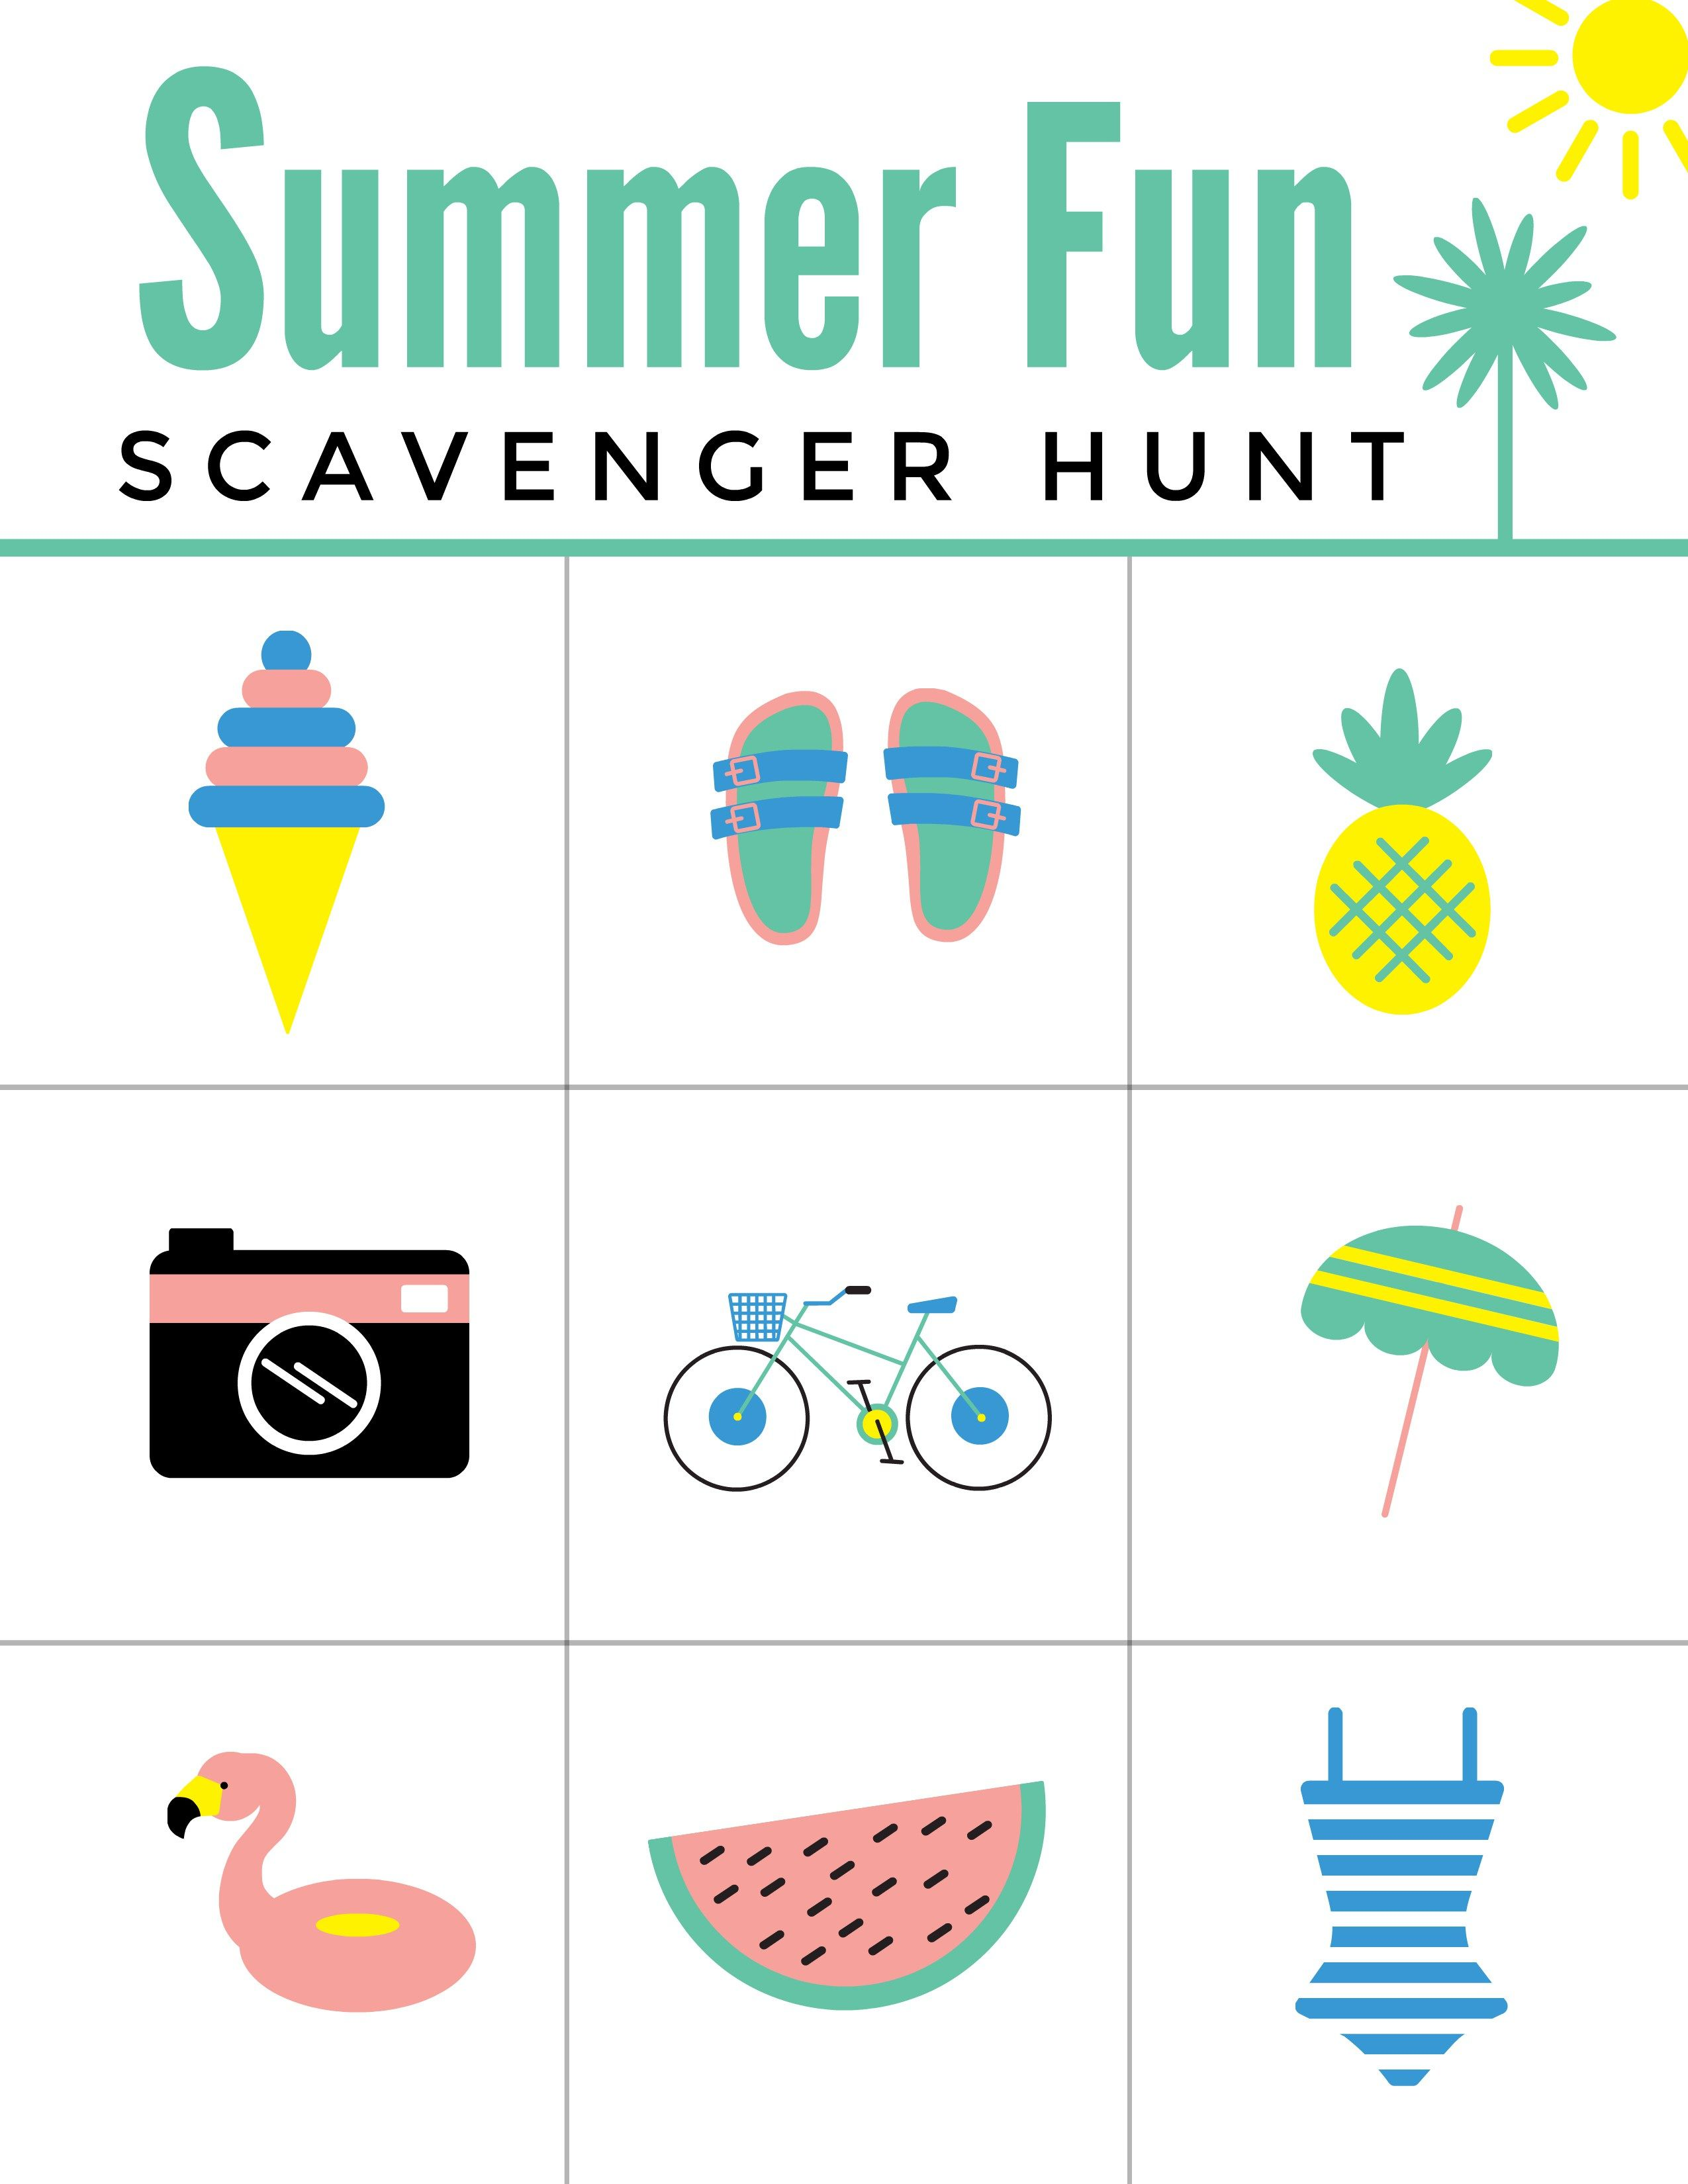 Summer Fun Scavenger Hunt Free Printable Worksheet For Kids Summer Activities For The Pool Bbq Be Kids Worksheets Printables Summer Fun Worksheets For Kids [ 3300 x 2550 Pixel ]